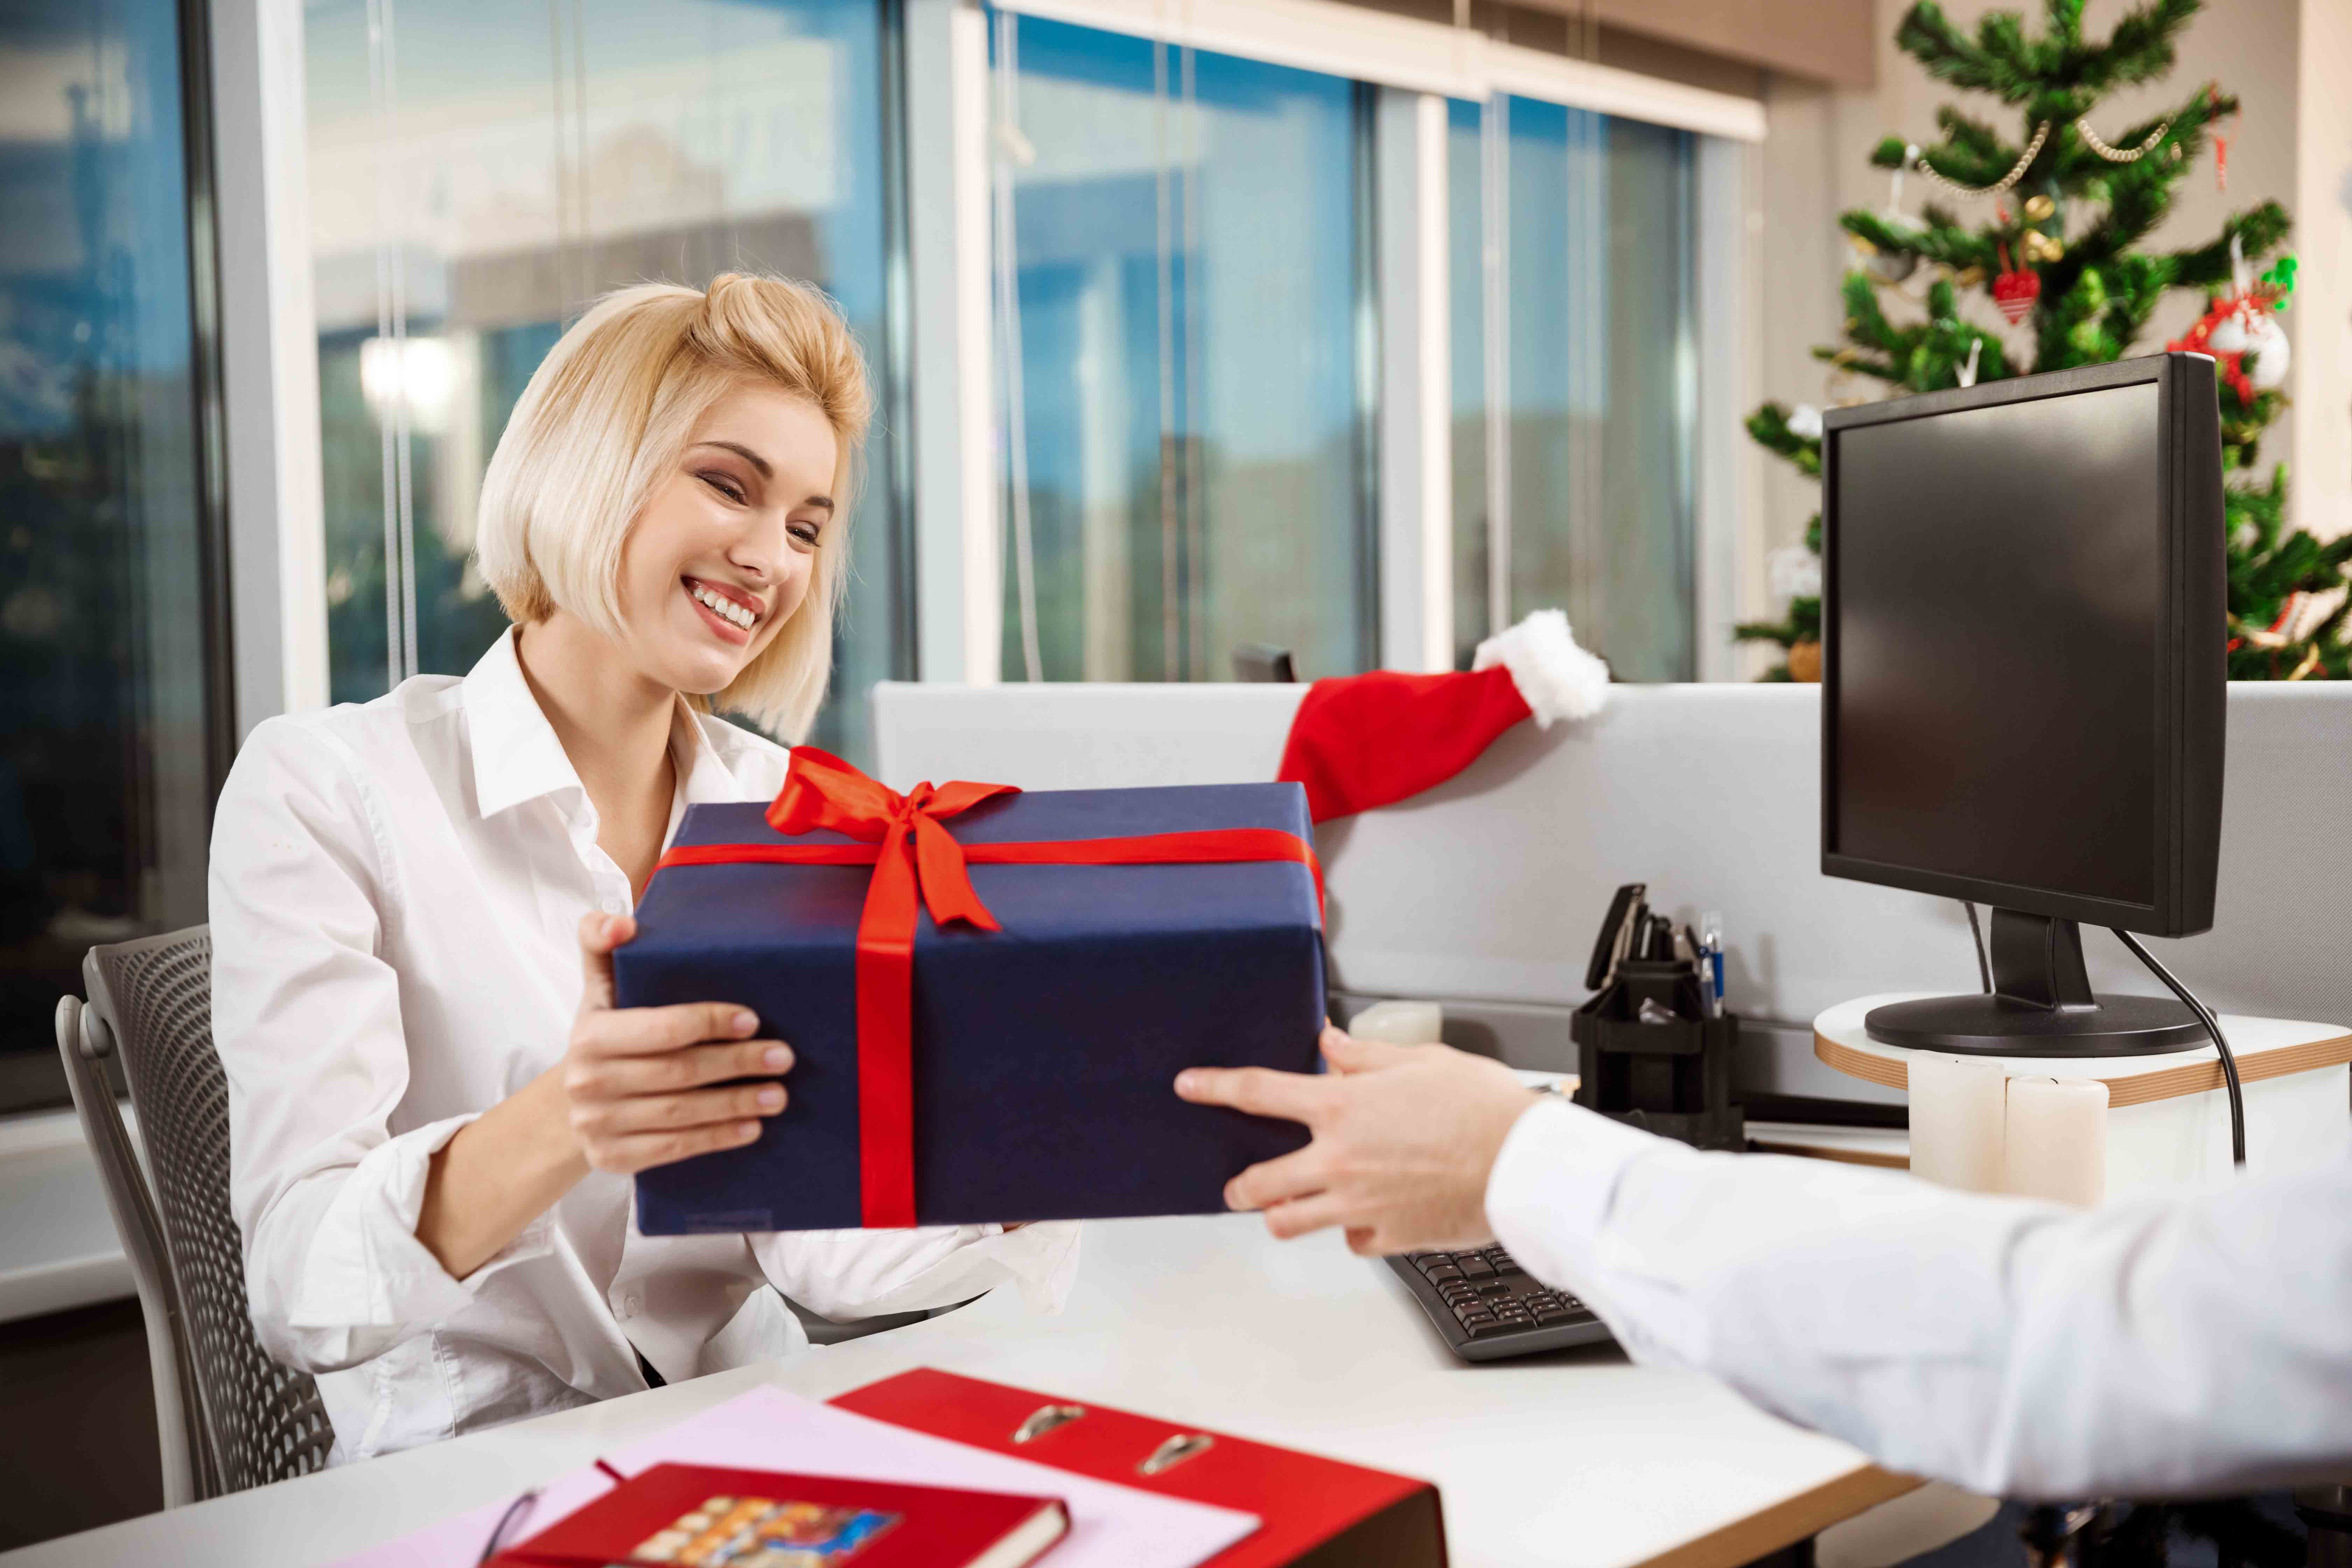 [object object] Corporate Gifts cg